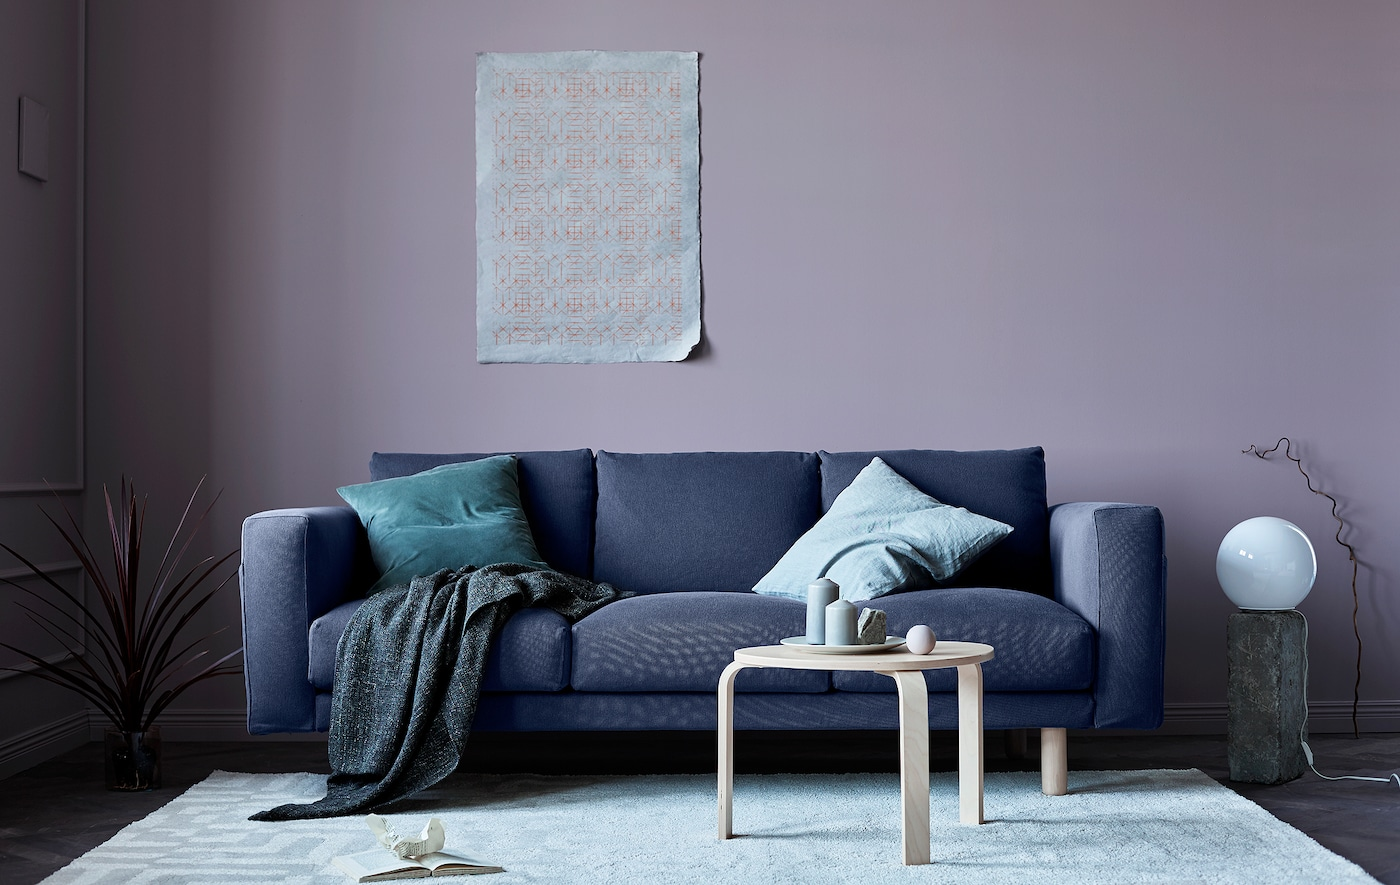 A living room updated for fall with a grey sofa, pink walls, blankets and natural elements.